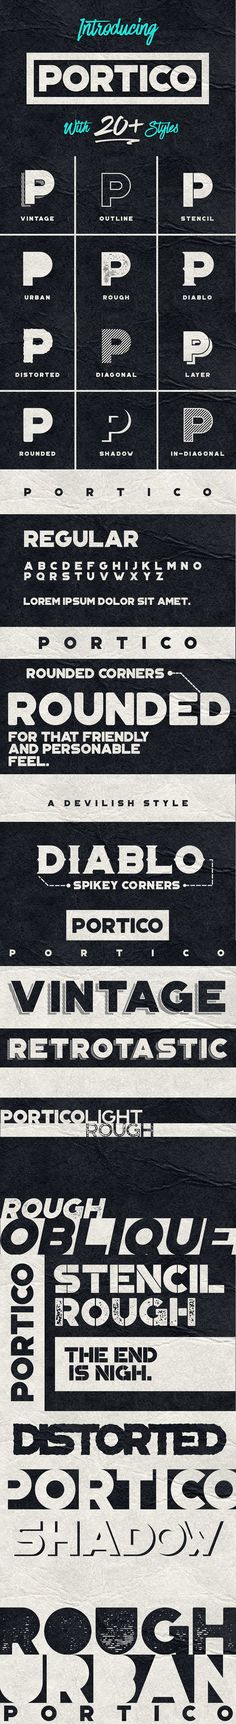 Portico is a display #typeface with a ton of styles. It includes uppercase multilingual letters, numbers and punctuation. The rounded and in-diagonal versions are great for more personable applications, the #urban and rough versions are great for all grunge #designs. ( #fonts #design #branding #print #vintage )